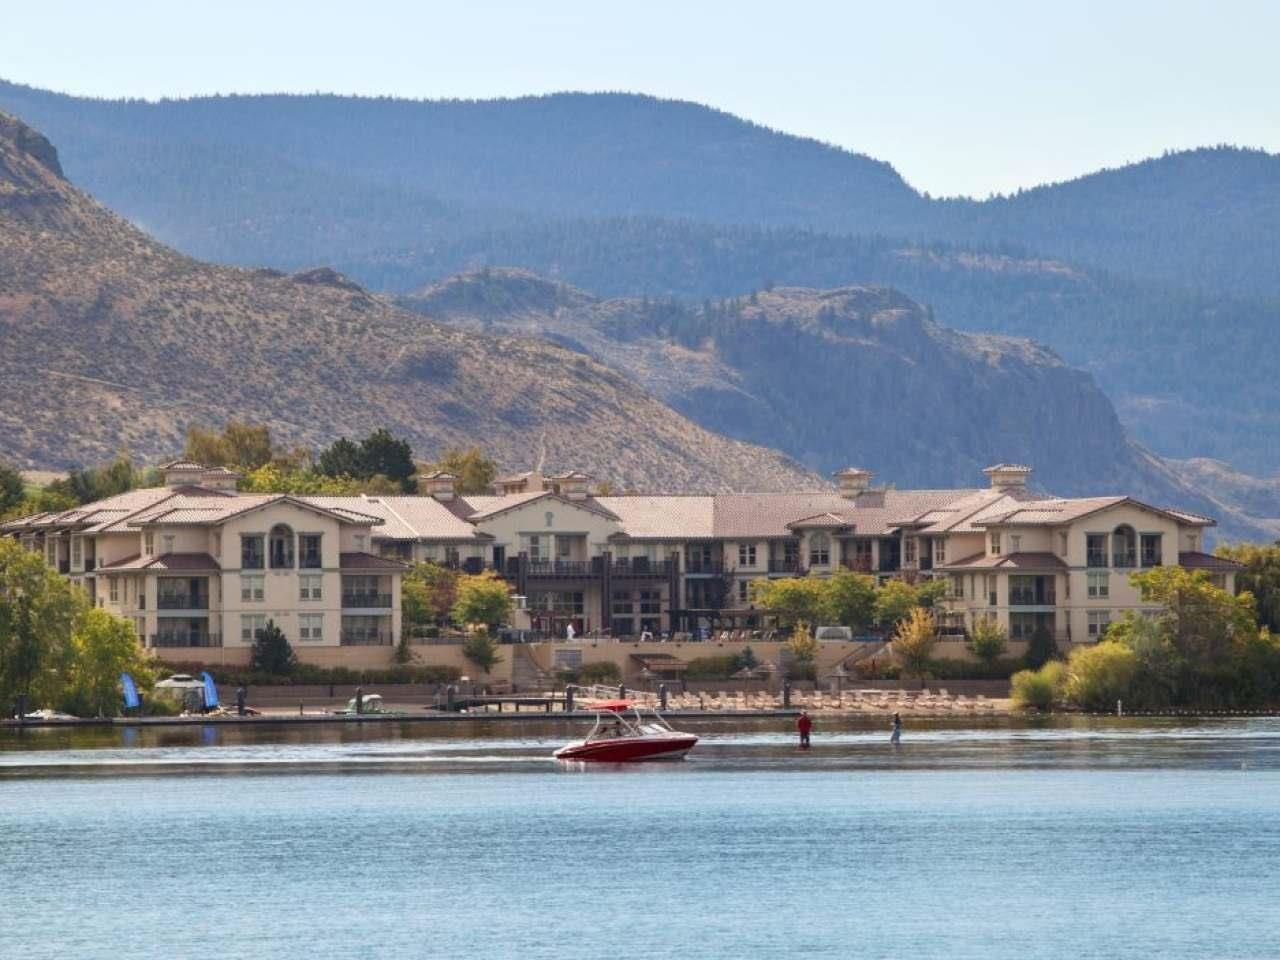 Main Photo: #116 4200 LAKESHORE Drive, in Osoyoos: House for sale : MLS®# 190286